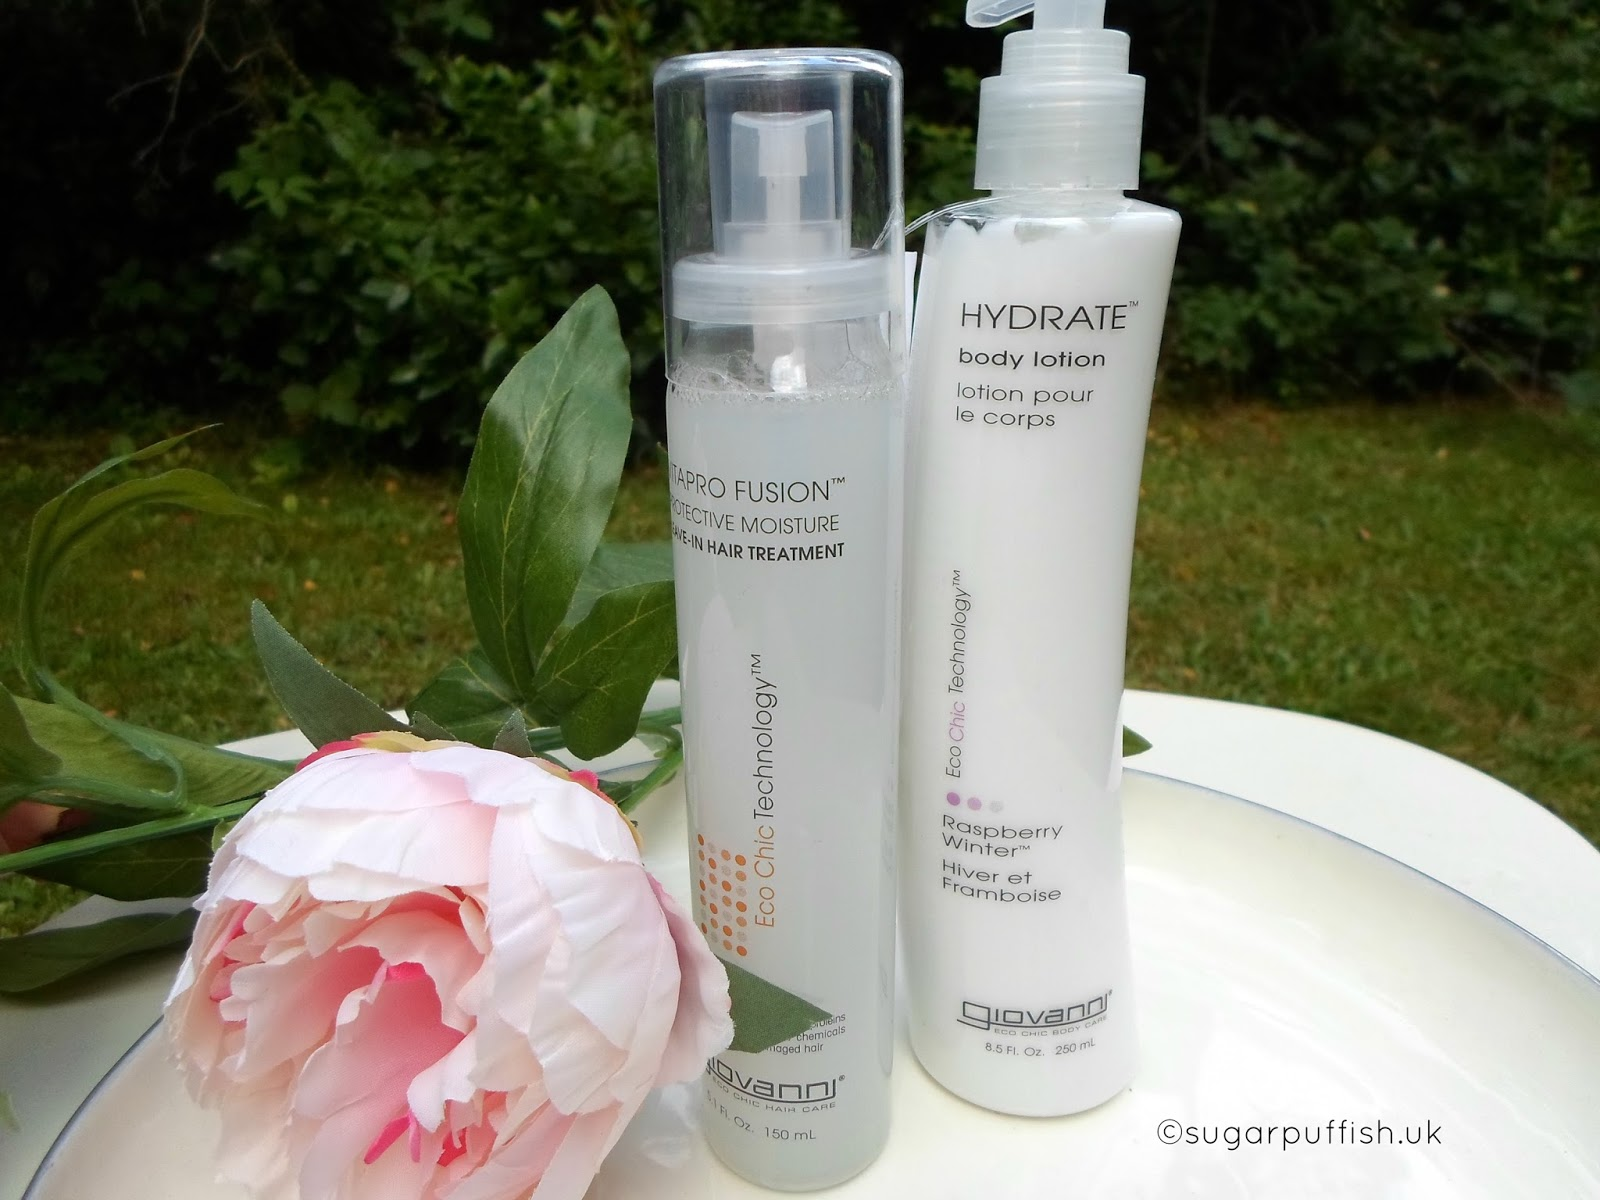 Giovanni Vitapro Fusion Leave in Hair Treatment and Raspberry Winter Body Lotion